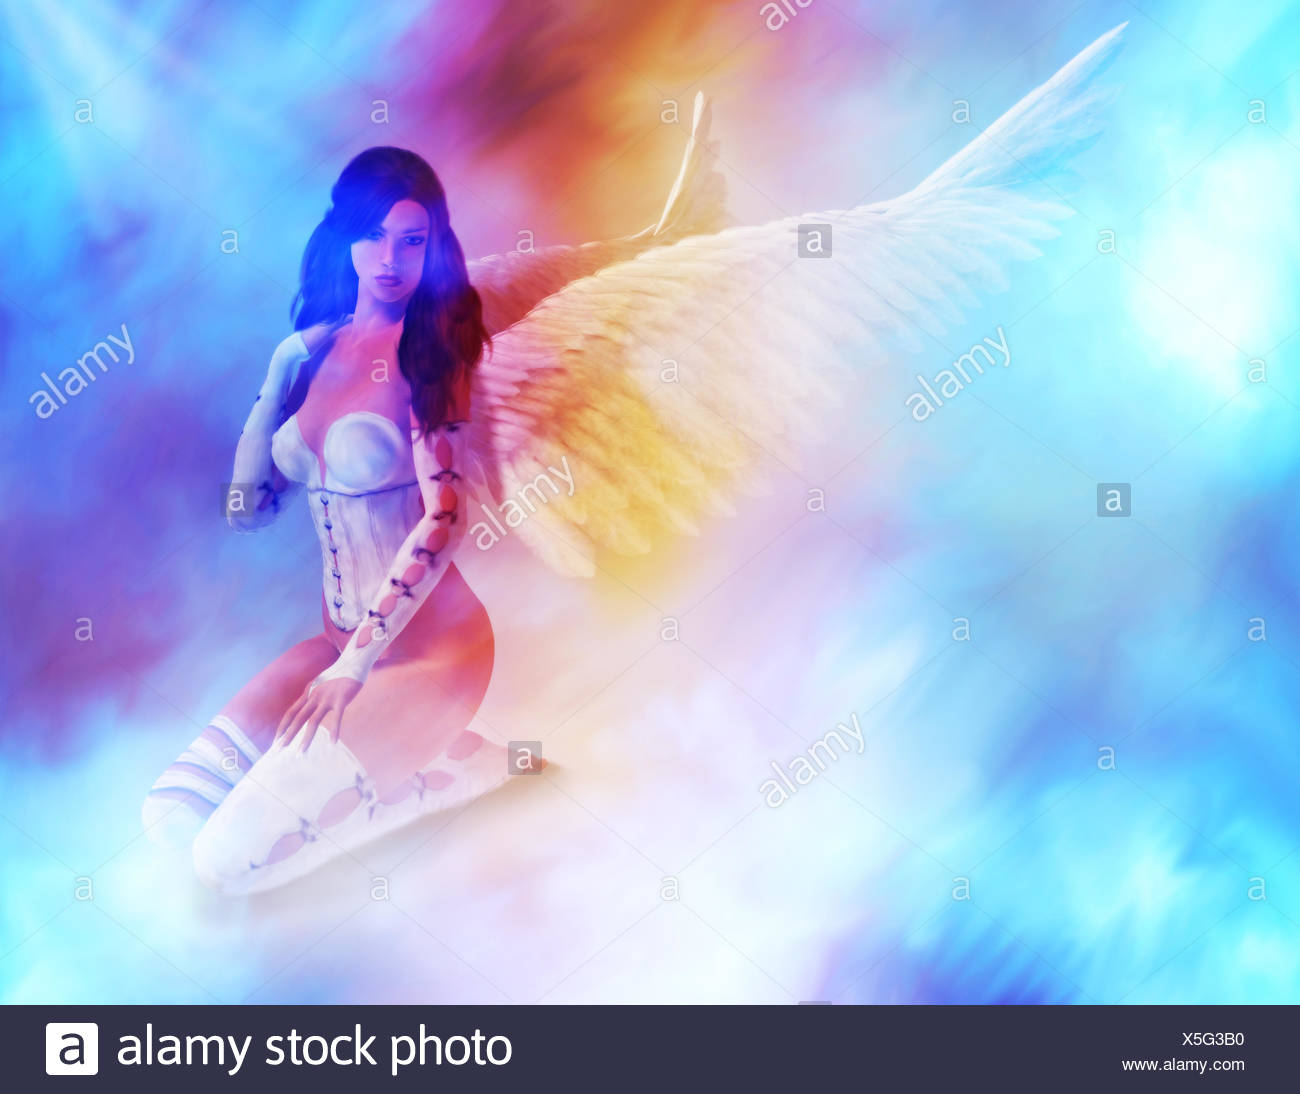 Angel Sitting On Clouds - Stock Image